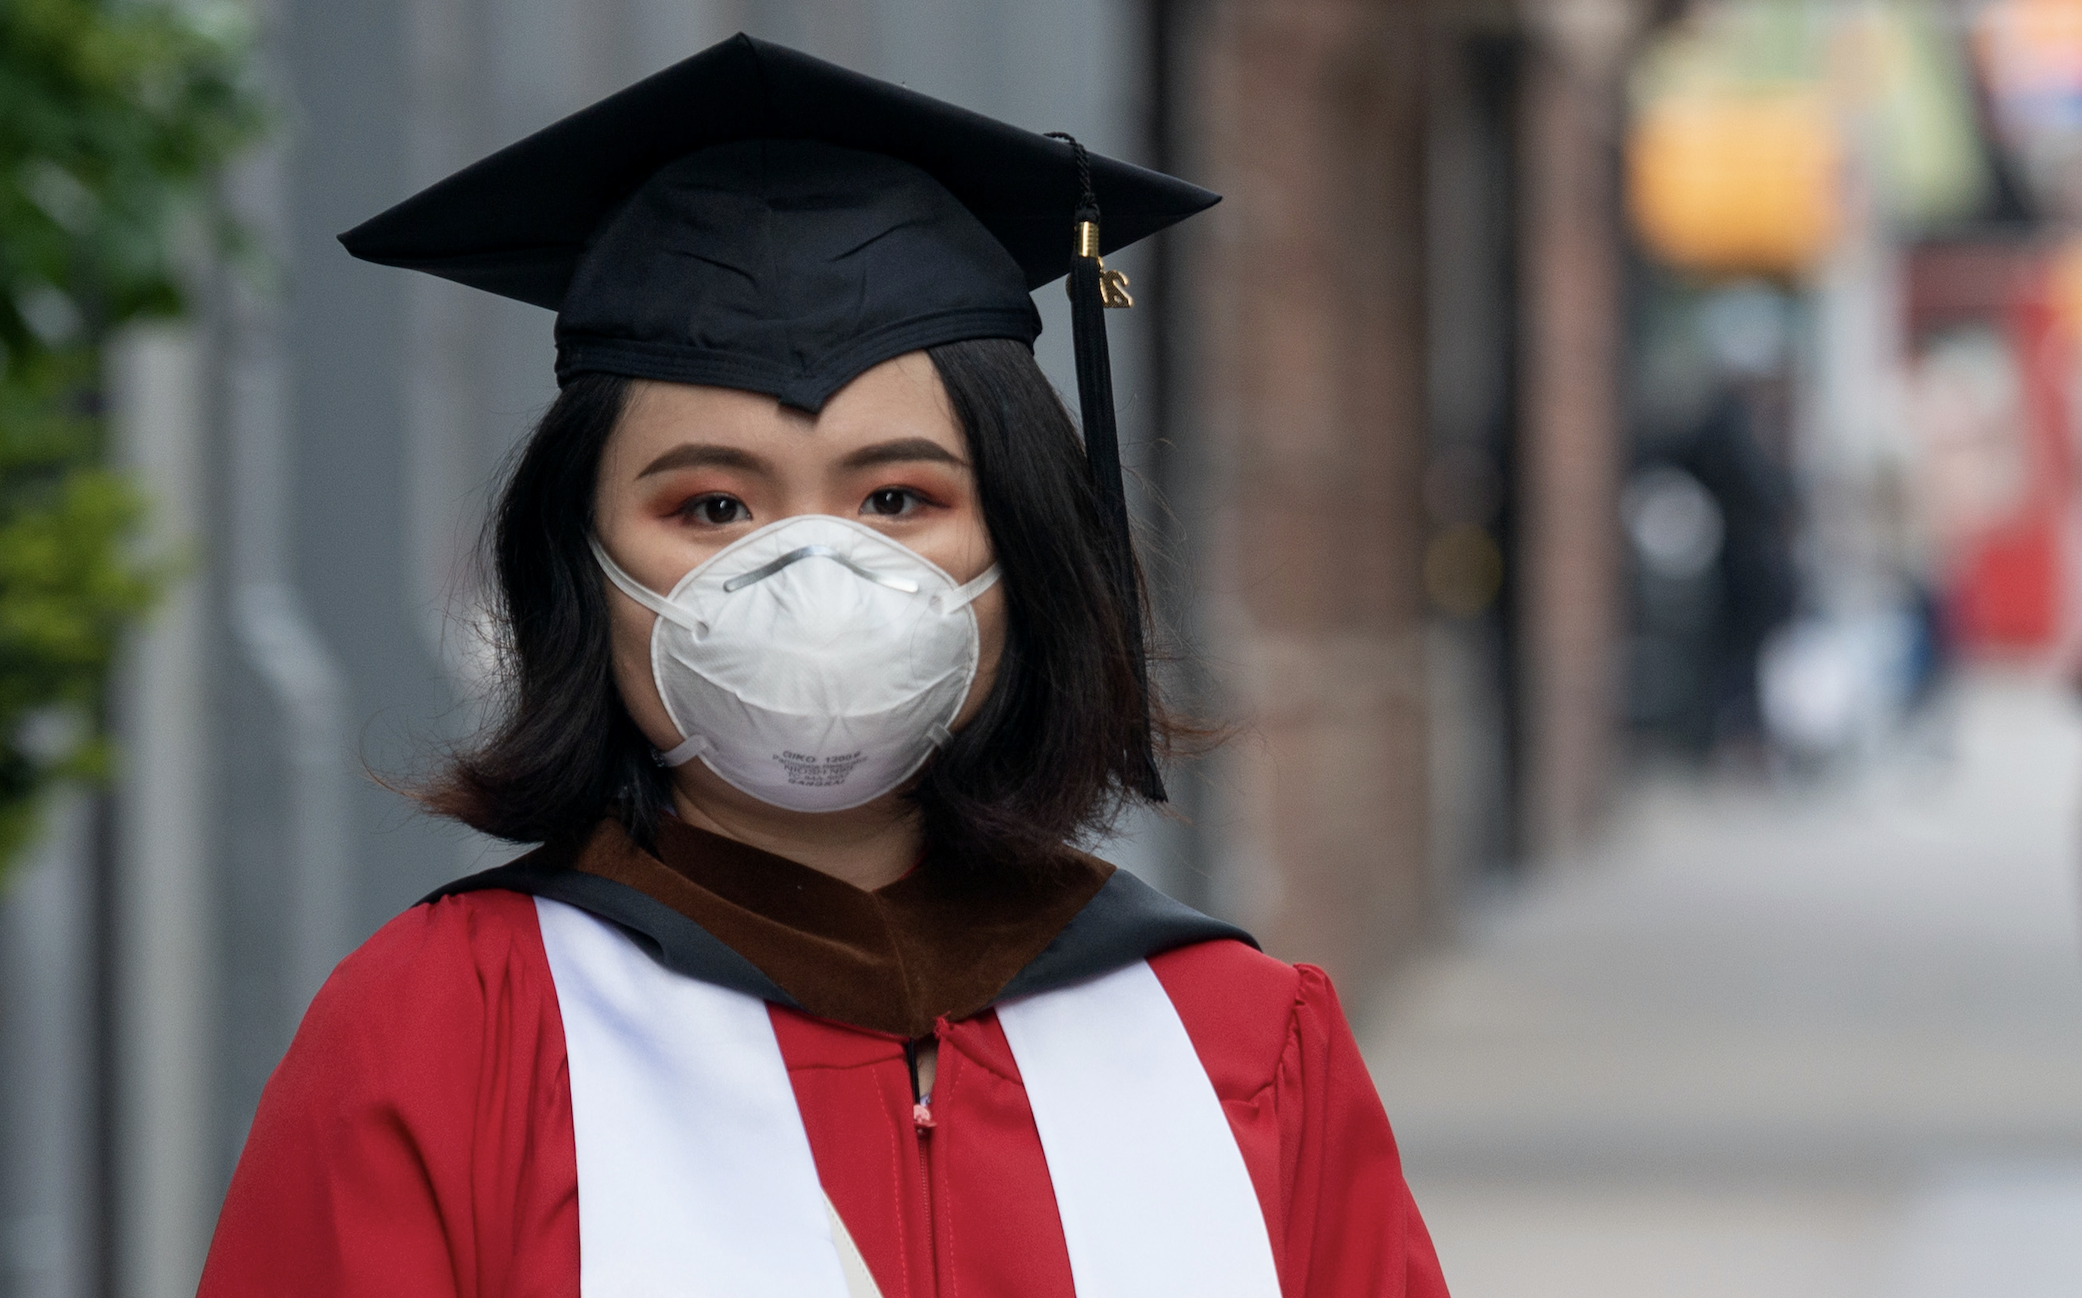 Student loan borrowers face 'increased stress, anxiety, and depression' amid coronavirus shock, survey finds